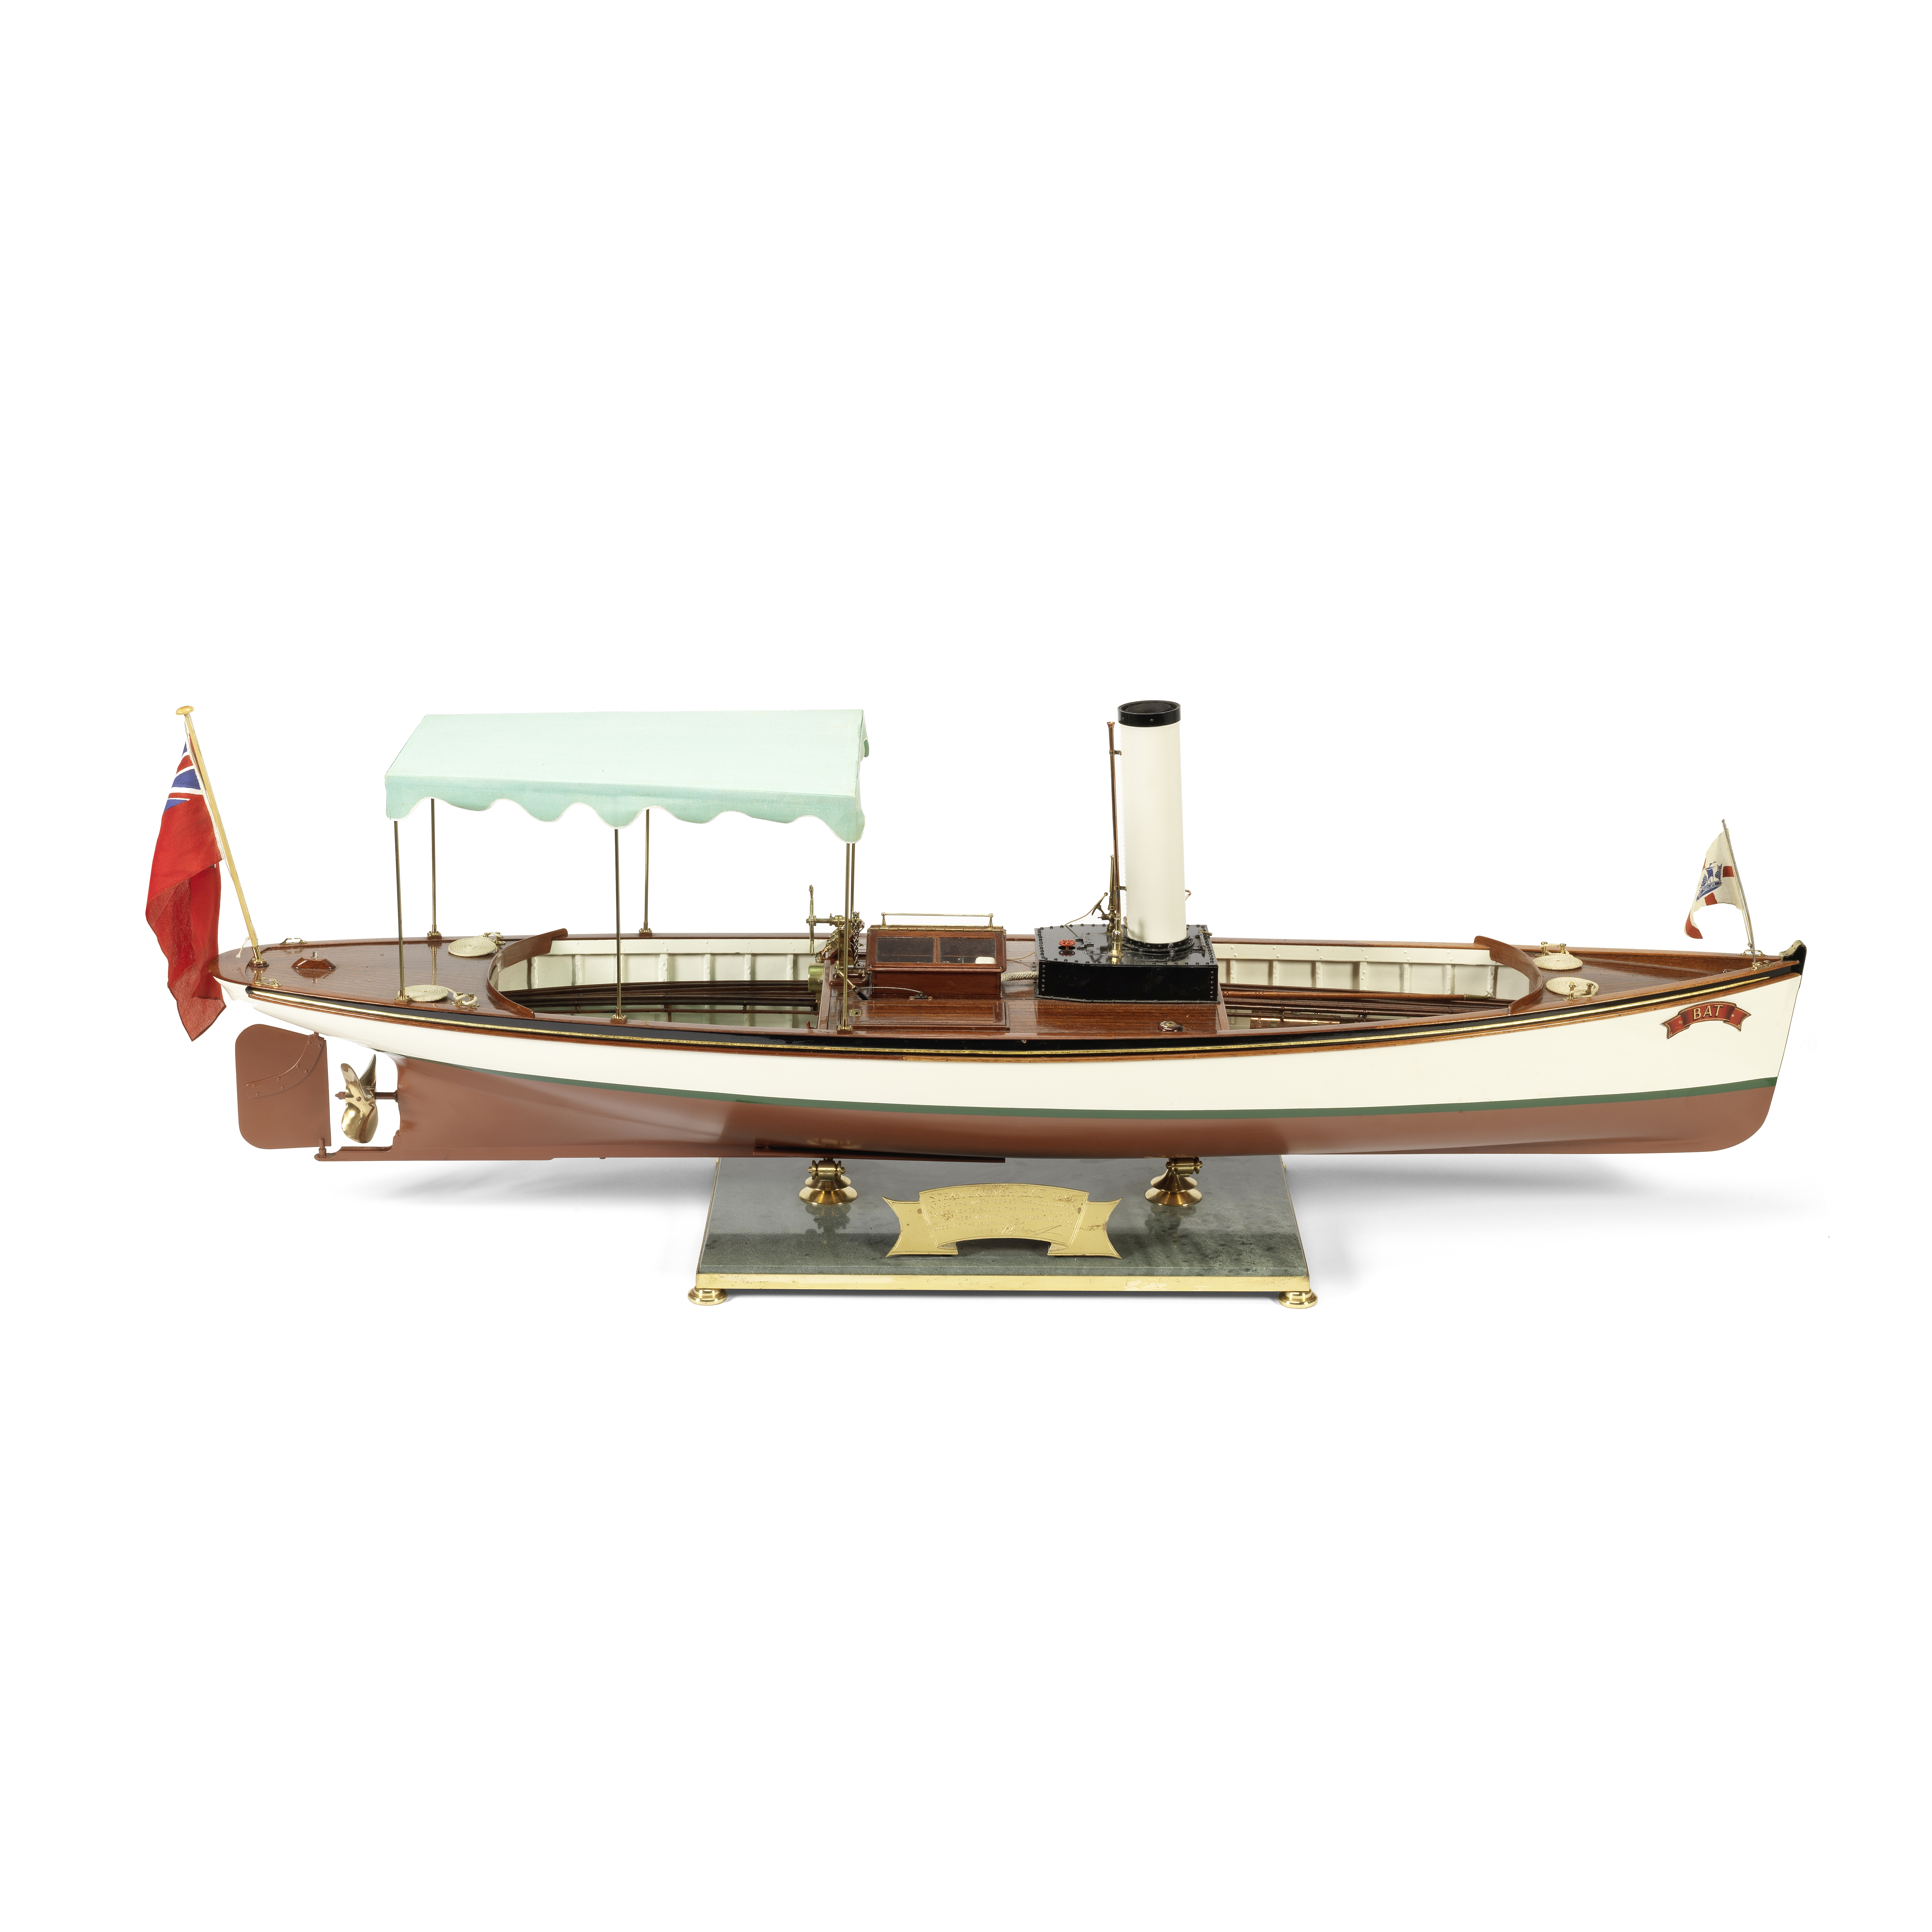 A Radio-Controlled Scale Model of the Steam Launch 'Bat', 20th century, 14in (35.5cm) tall on bas...